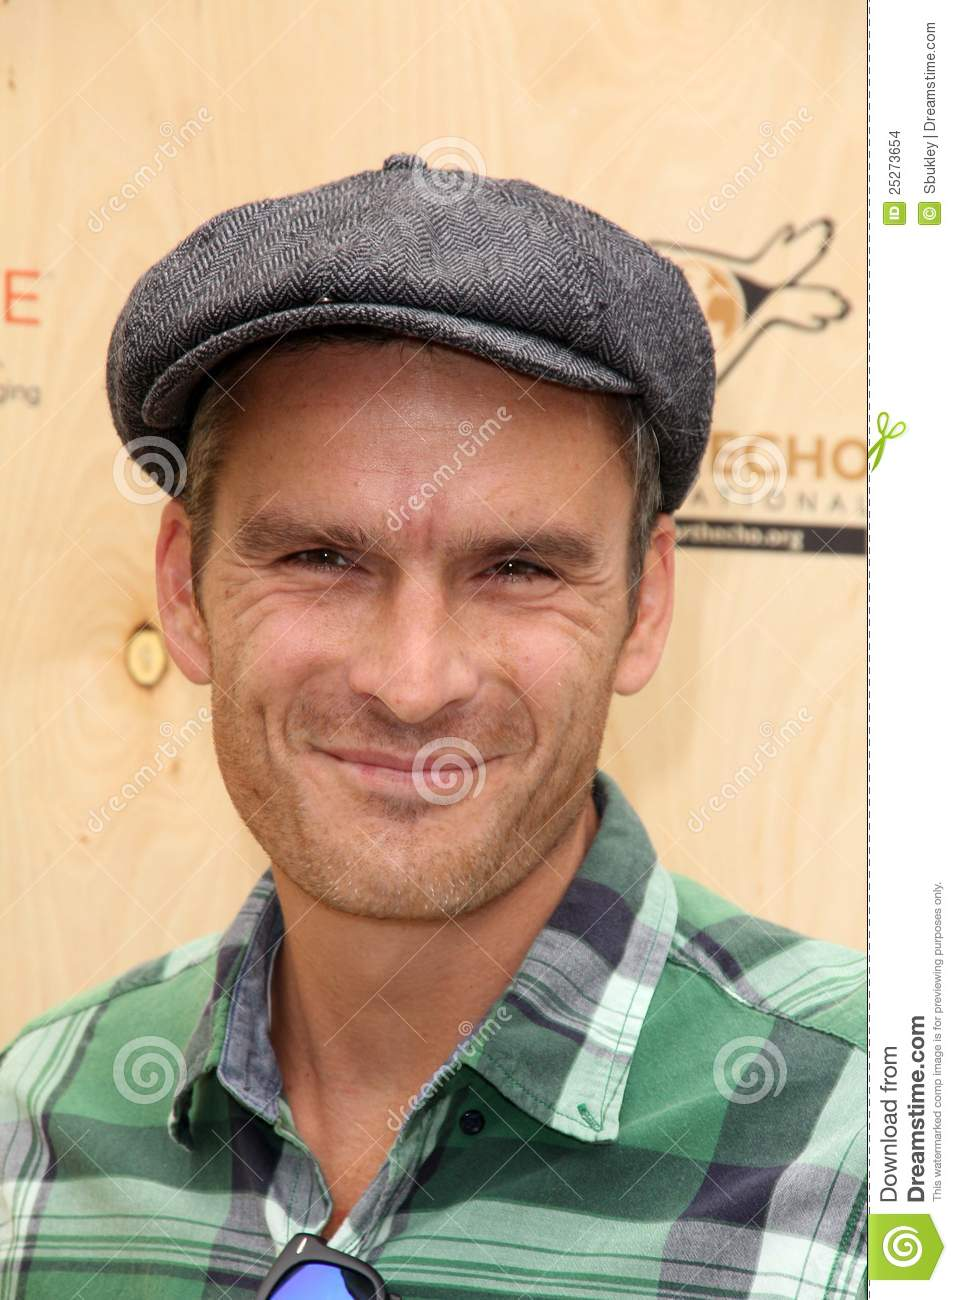 balthazar getty movies and tv shows